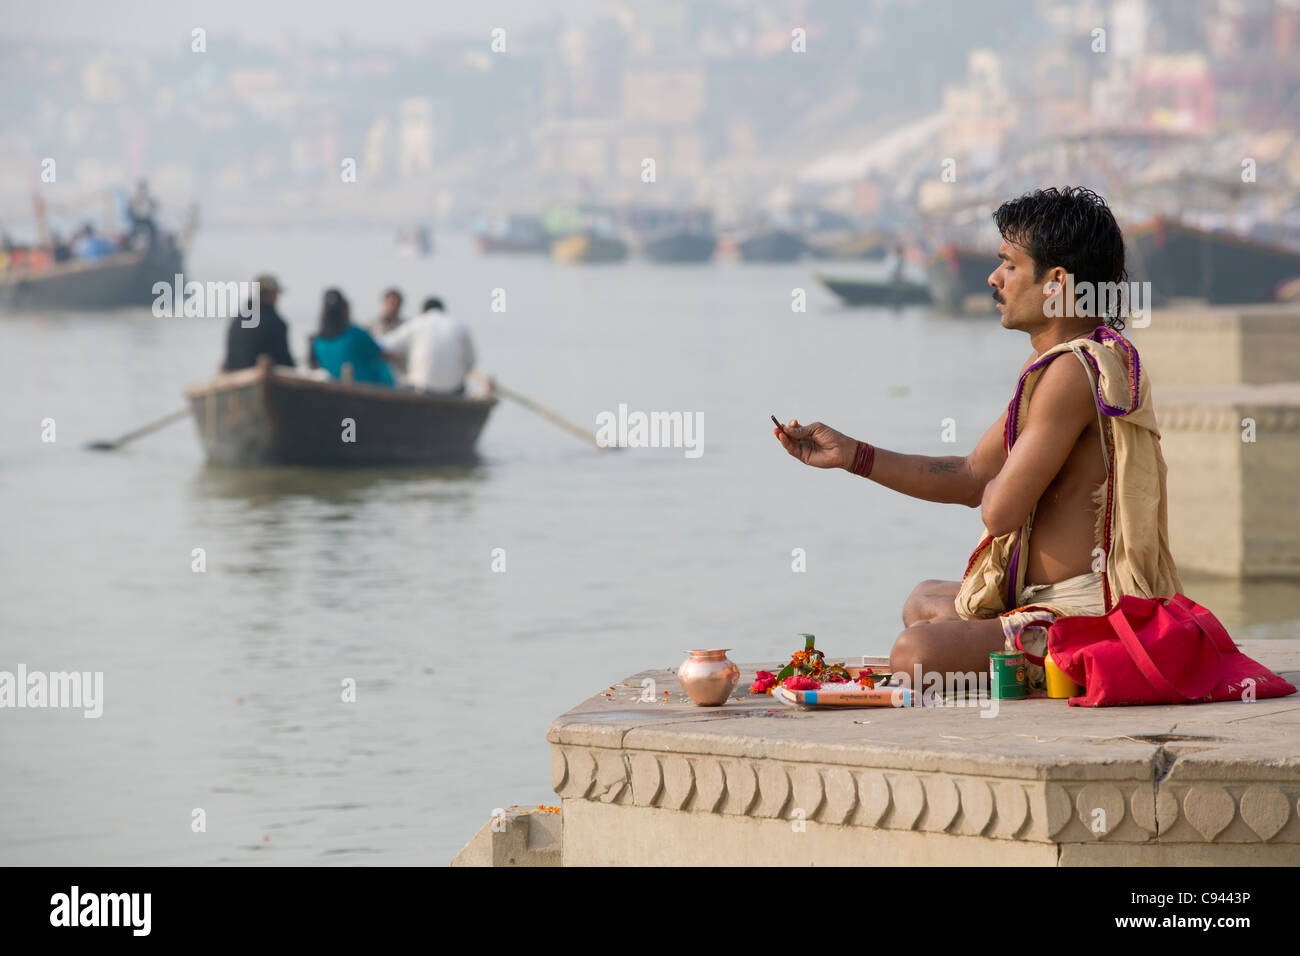 Sadhu praying on the ghats lining the River Ganges, with a rowboat in the background, Varanasi, Uttar Pradesh, India - Stock Image